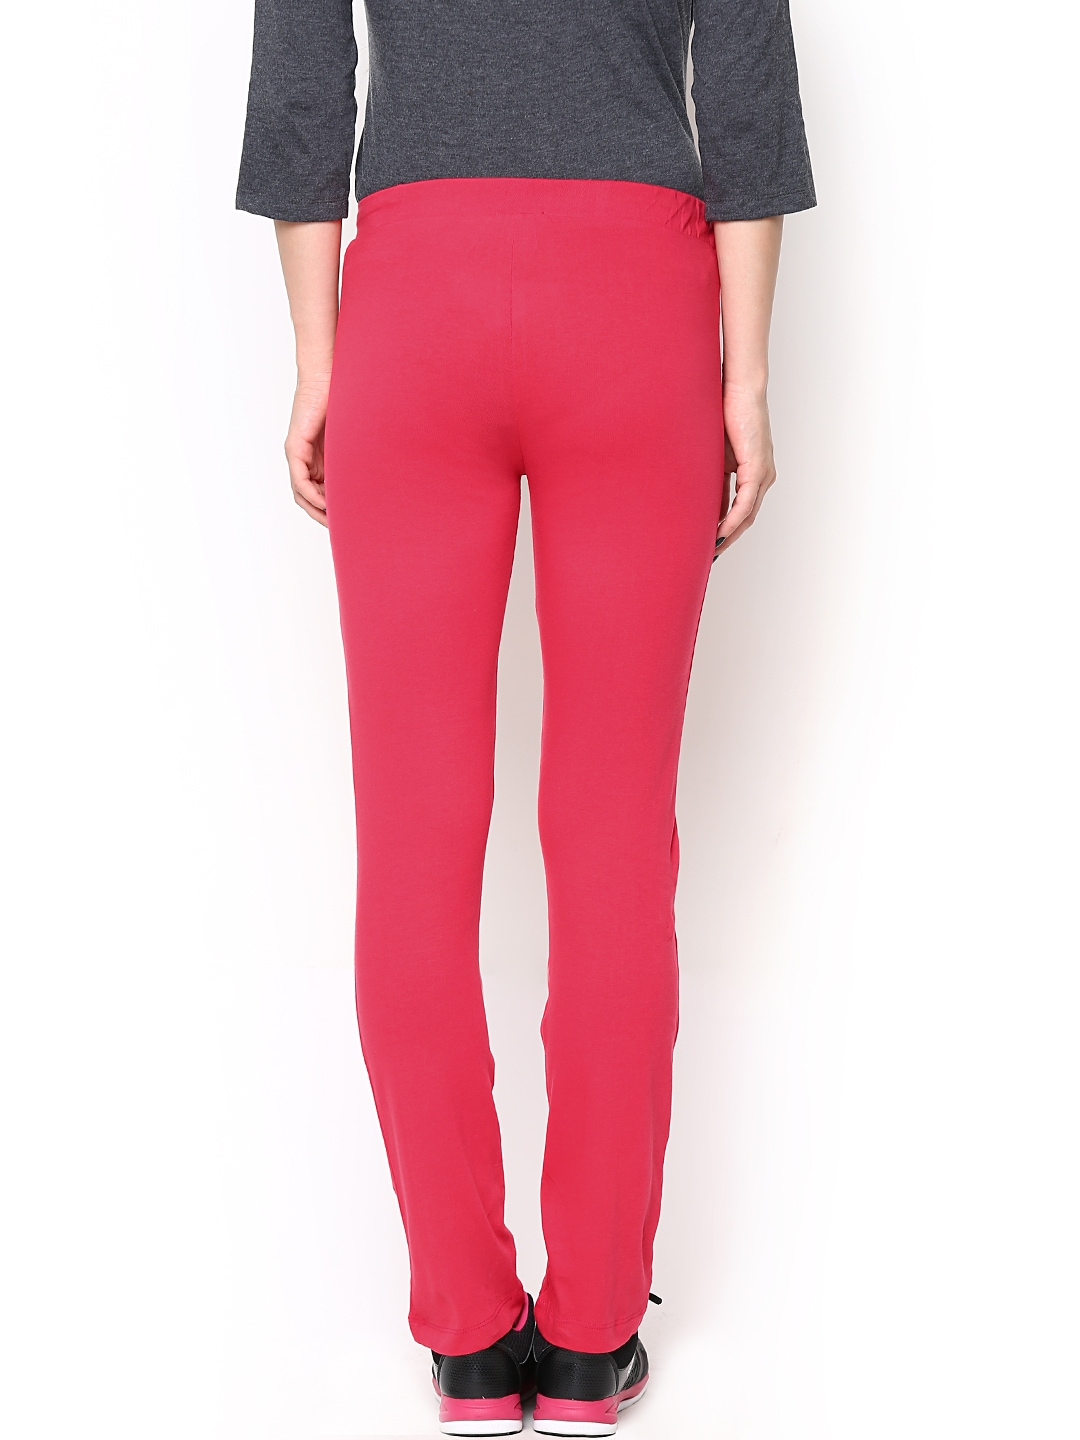 Elegant Feel Comfortable While Wearing Track Pants Women  Medodealcom